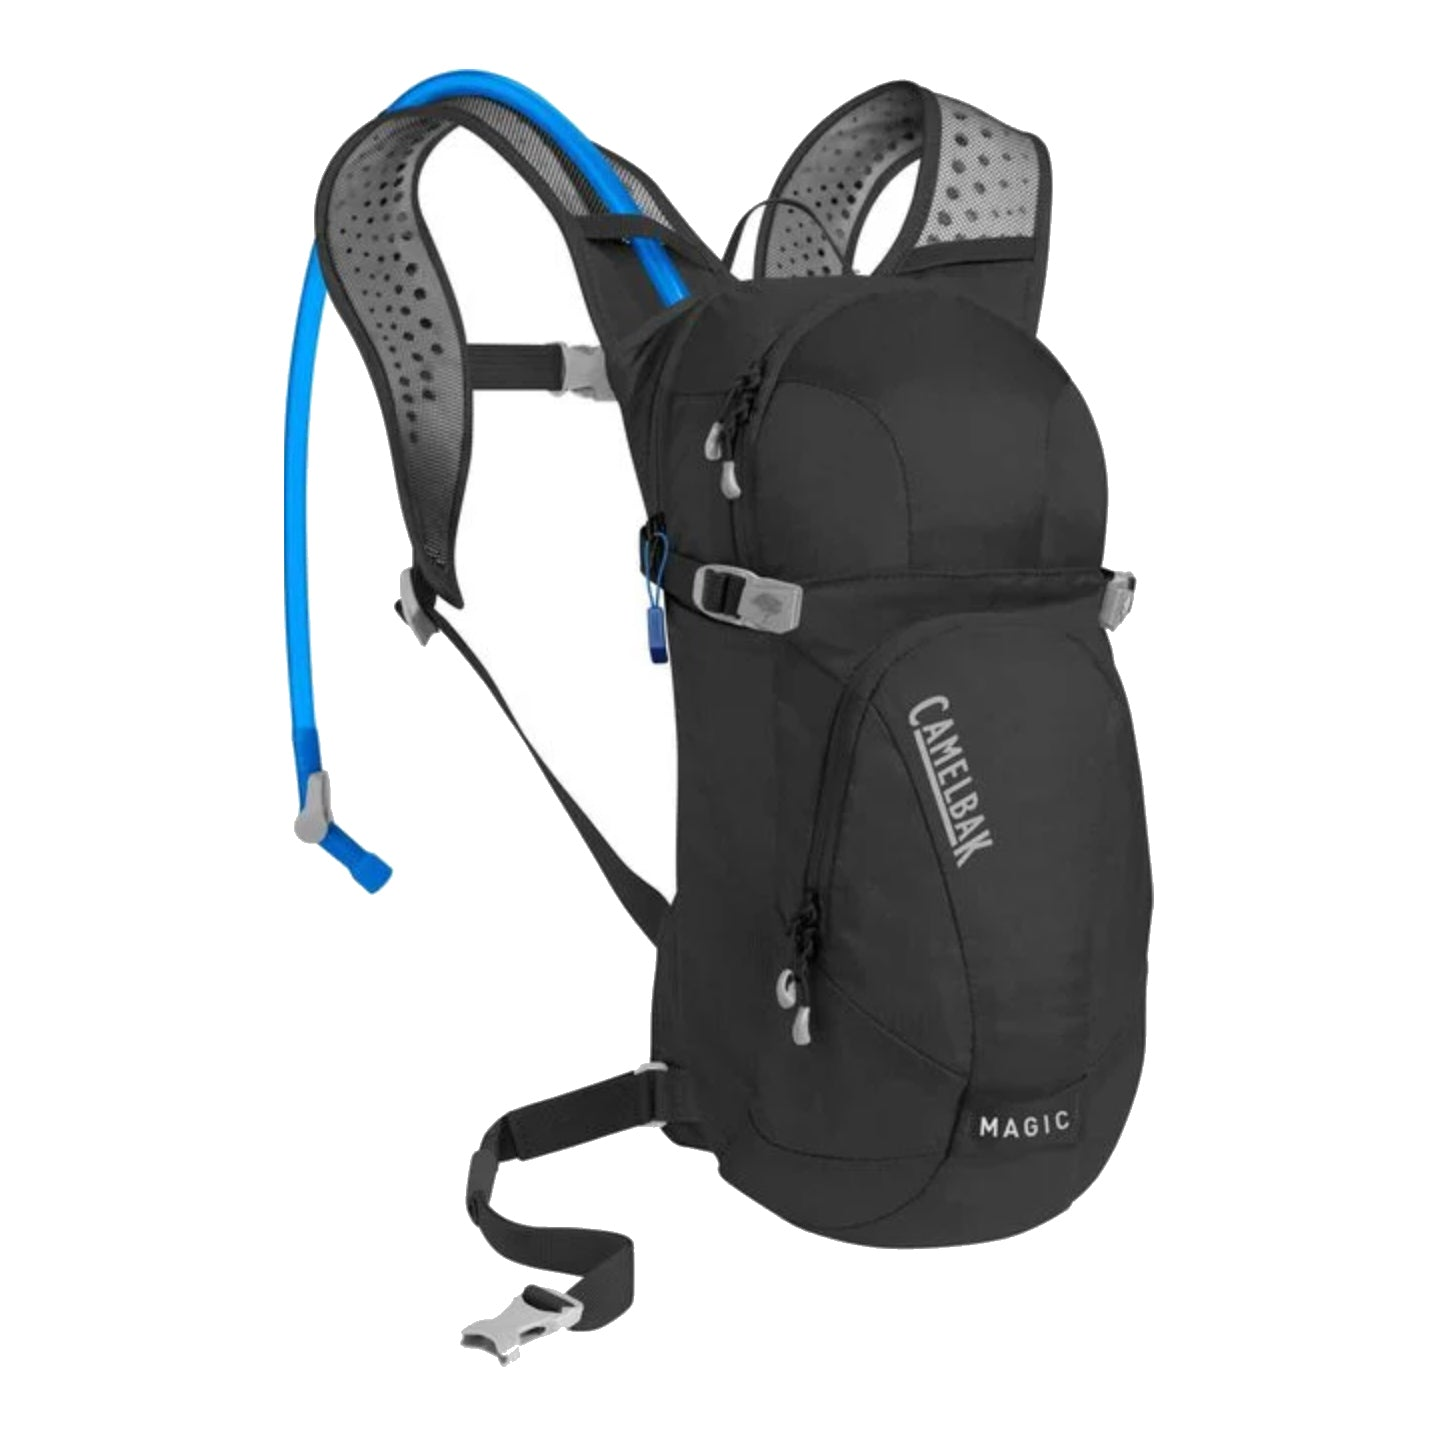 magic women's hydration pack black front view